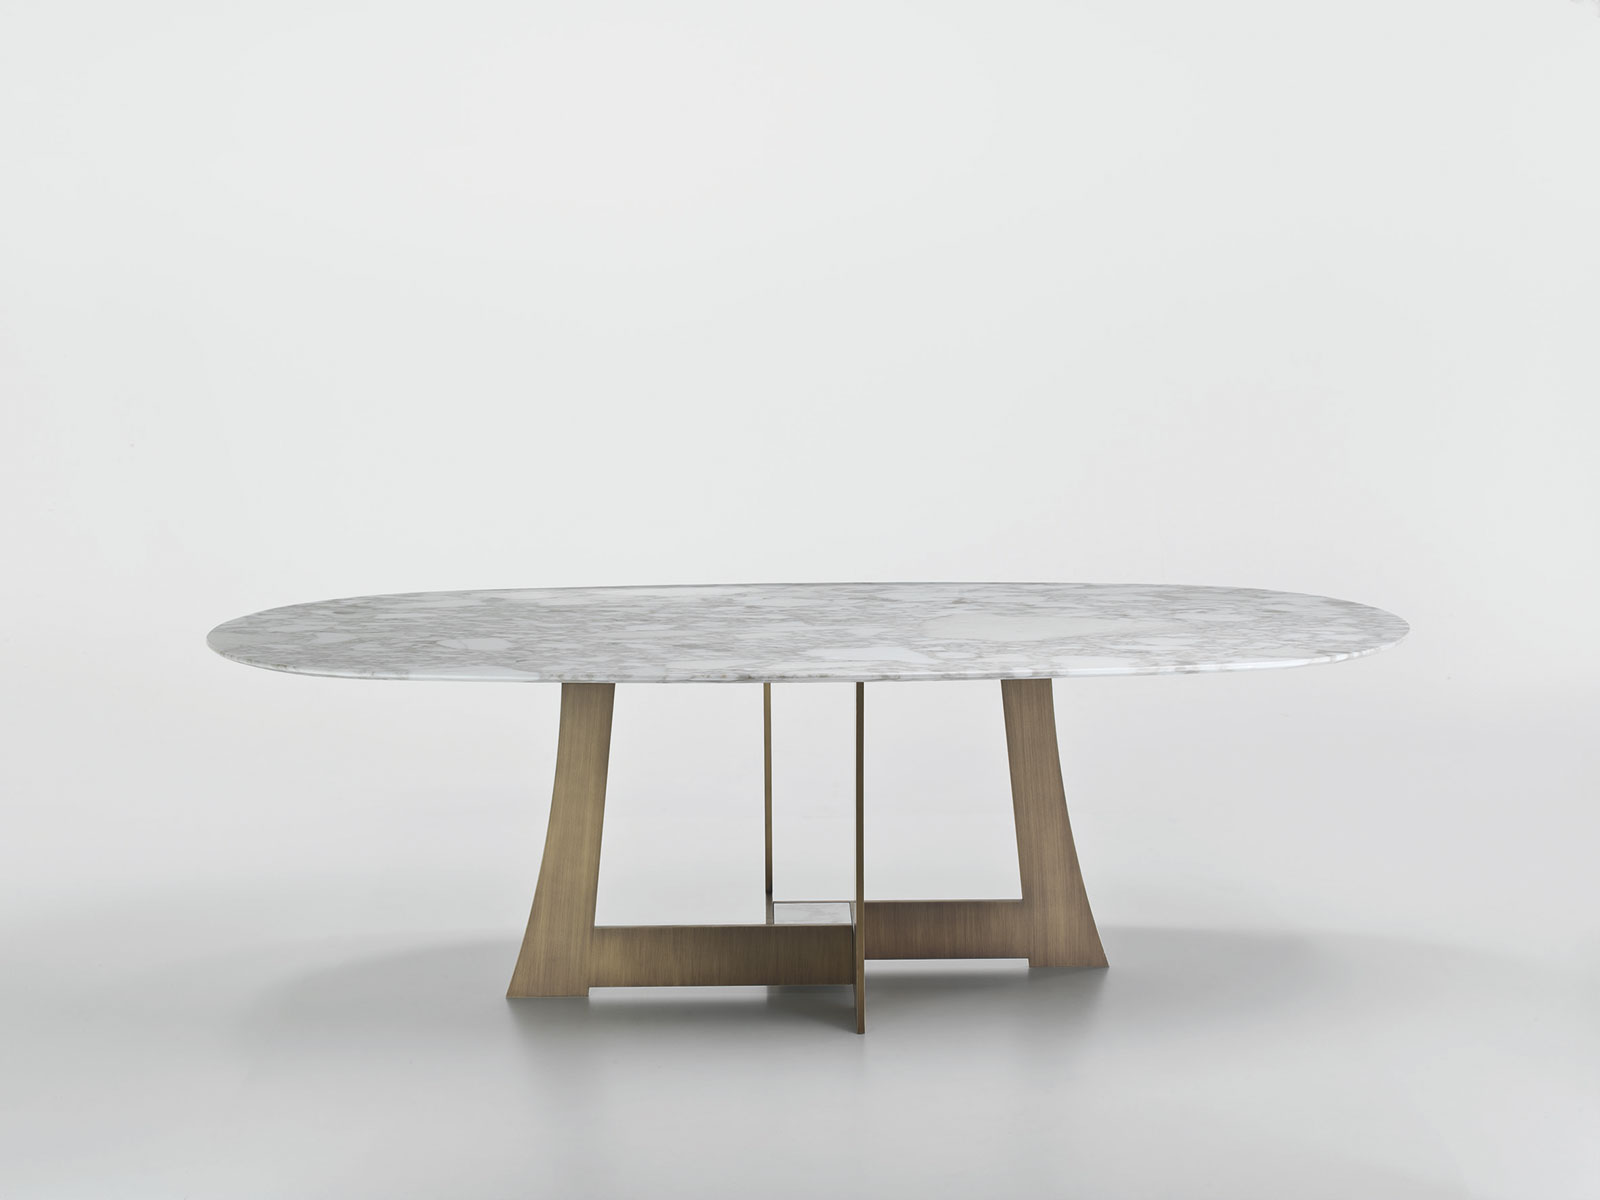 Oval design dining table made in italy. Marble table designed by Umberto Asnago. Buy online our luxury Italian furniture for home, office, garden.